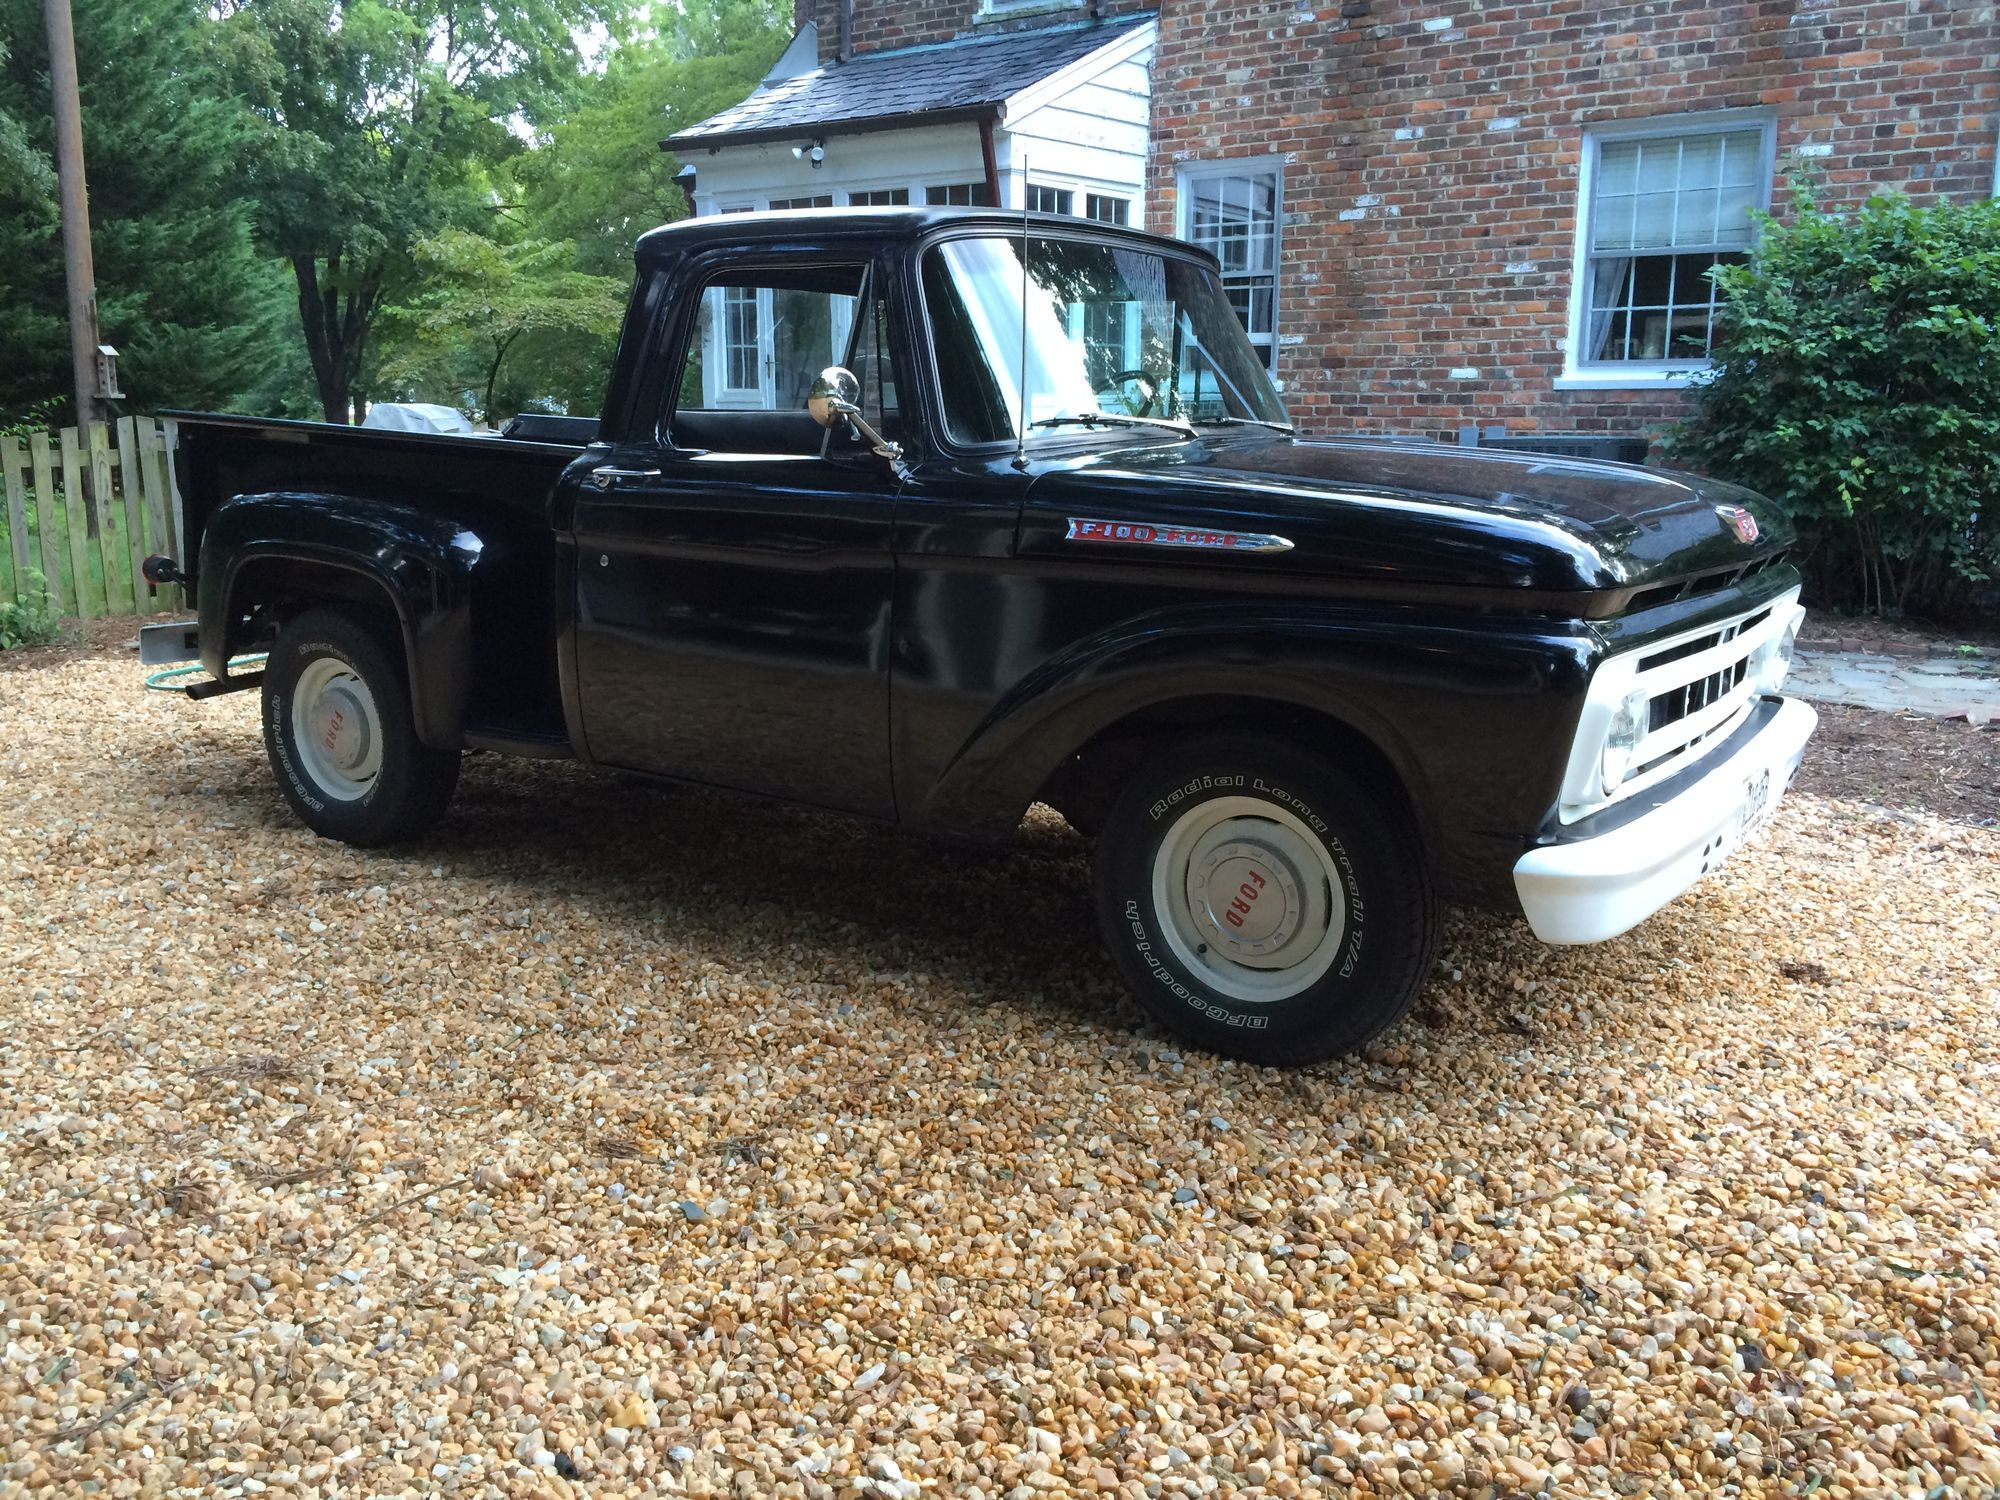 1961 Ford F100 Swb Stepside Ford Truck Enthusiasts Forums Ford Truck Trucks F100 Truck